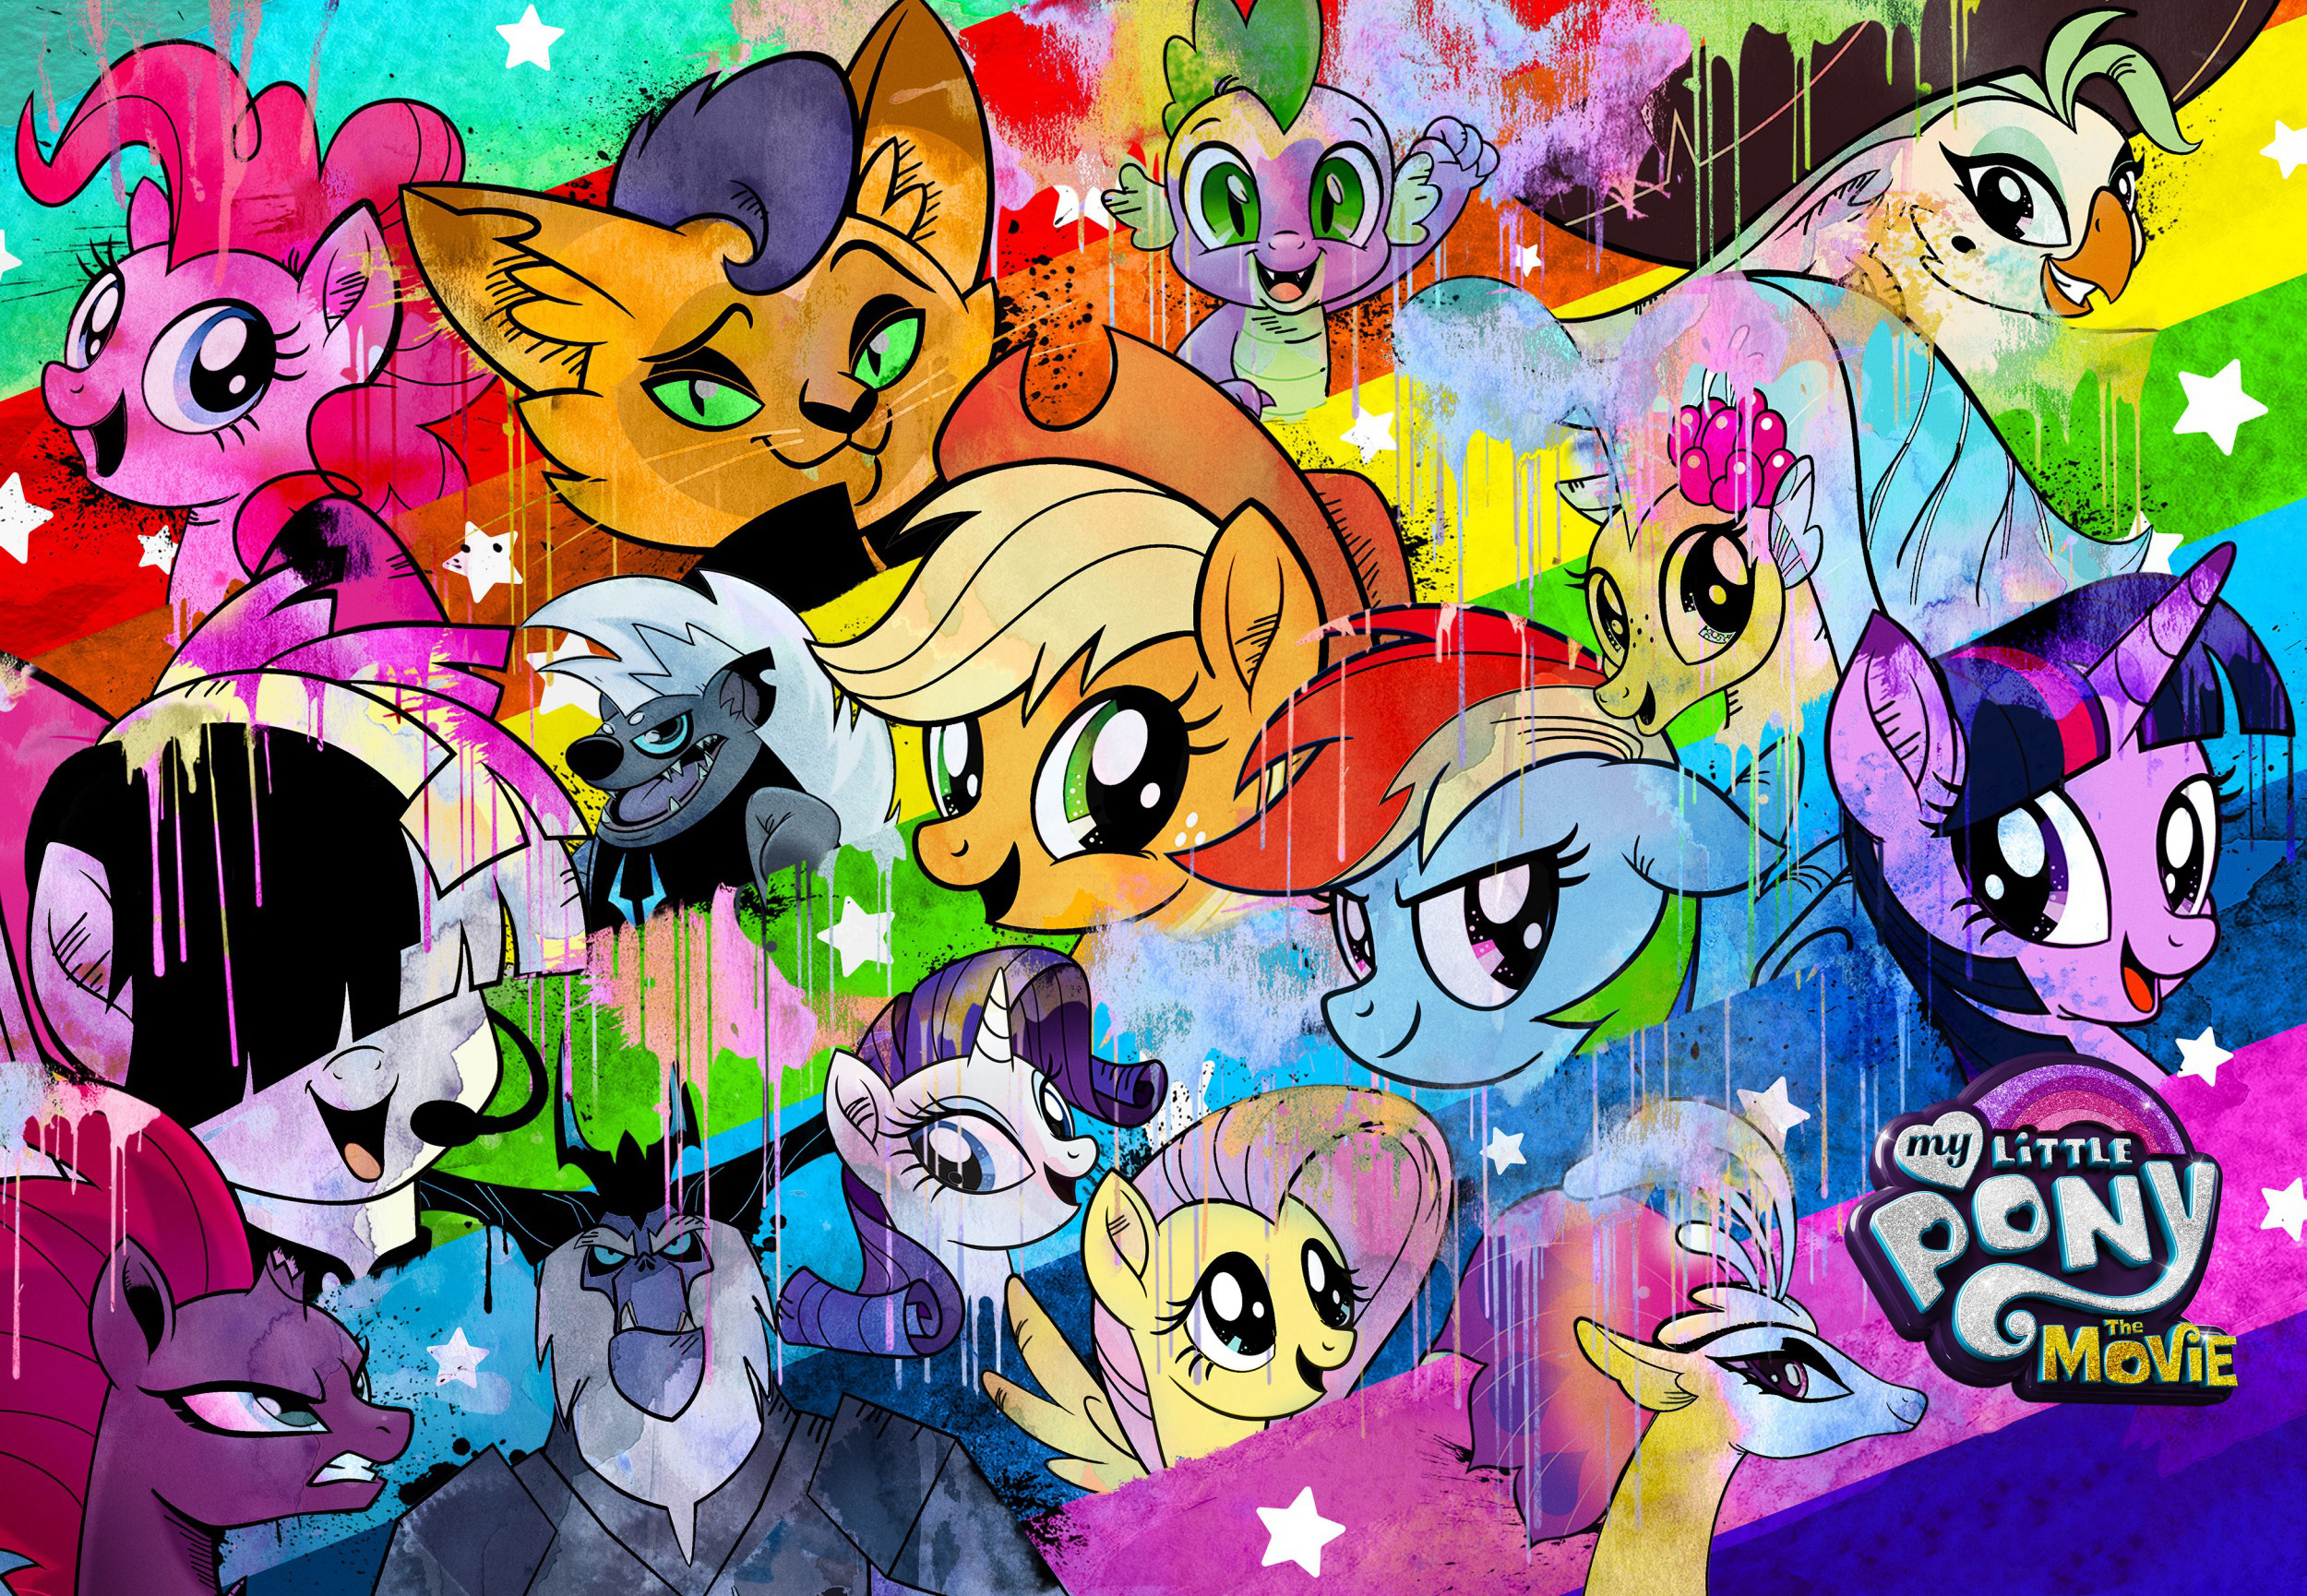 1125x2436 My Little Pony Movie Iphone Xs Iphone 10 Iphone X Hd 4k